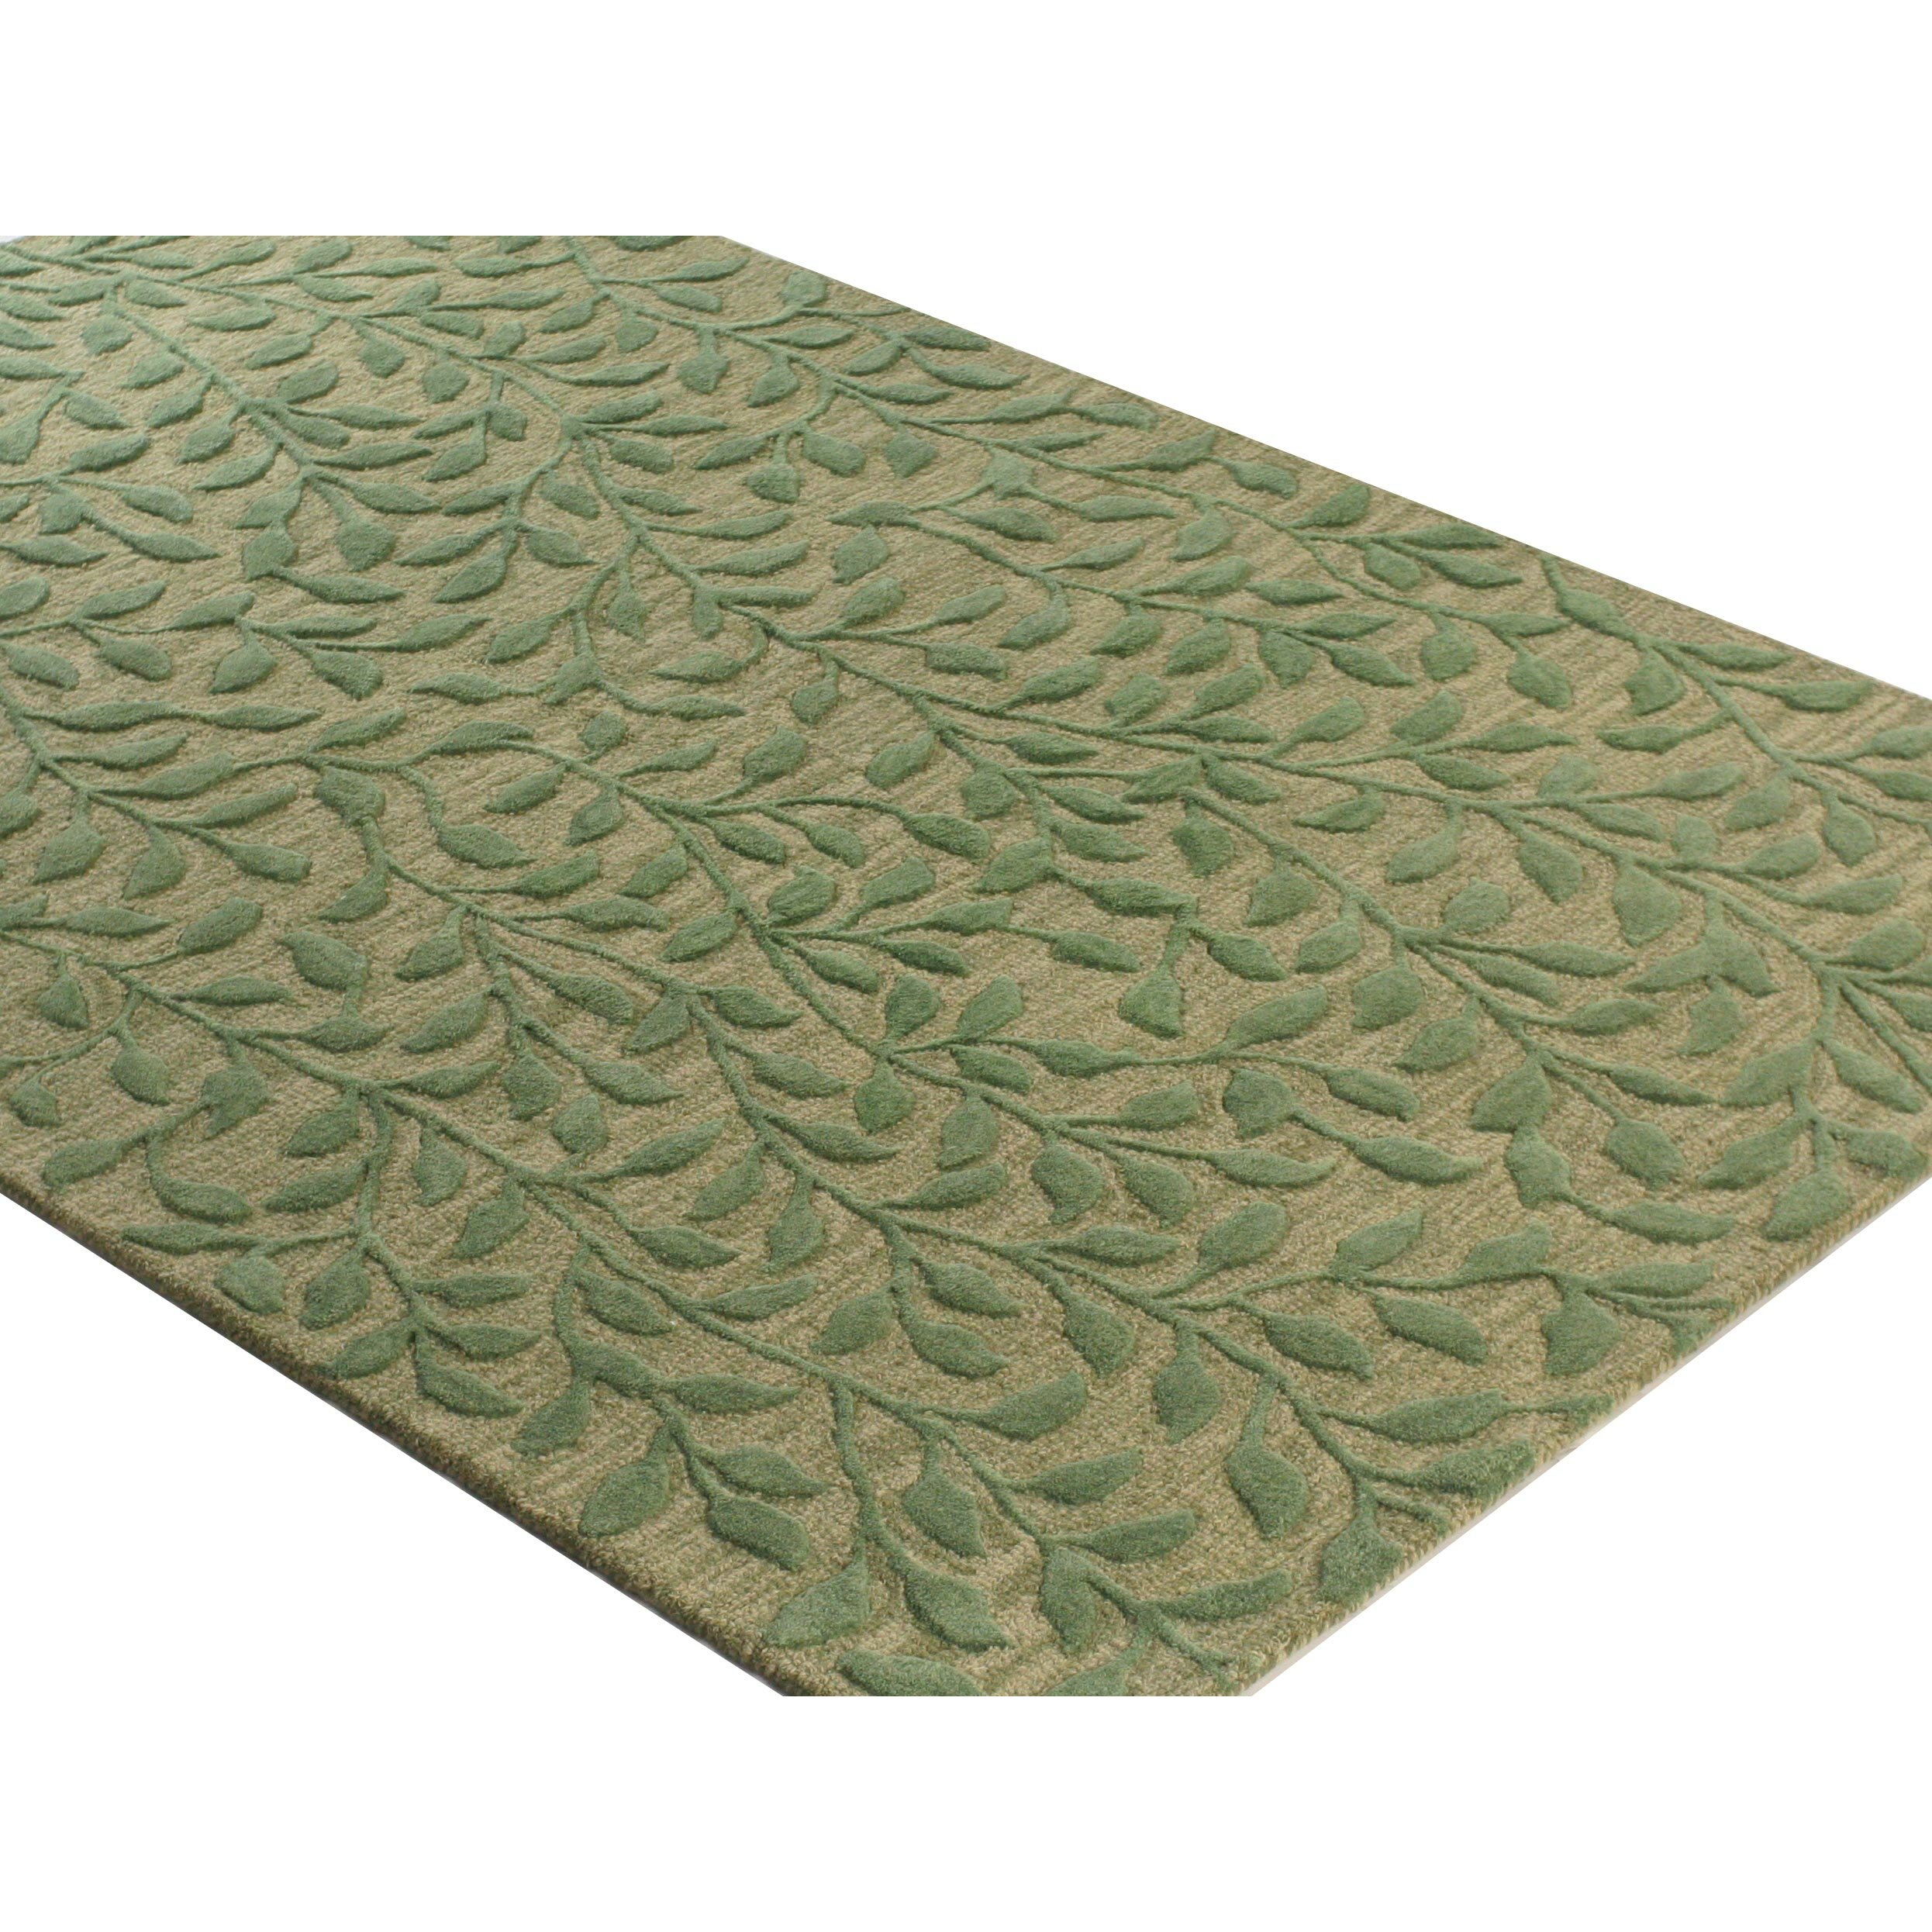 The Conestoga Trading Co Hand Tufted Light Green Area Rug  : Light Green Area Rug CNTC4801 from www.wayfair.com size 2492 x 2492 jpeg 1104kB